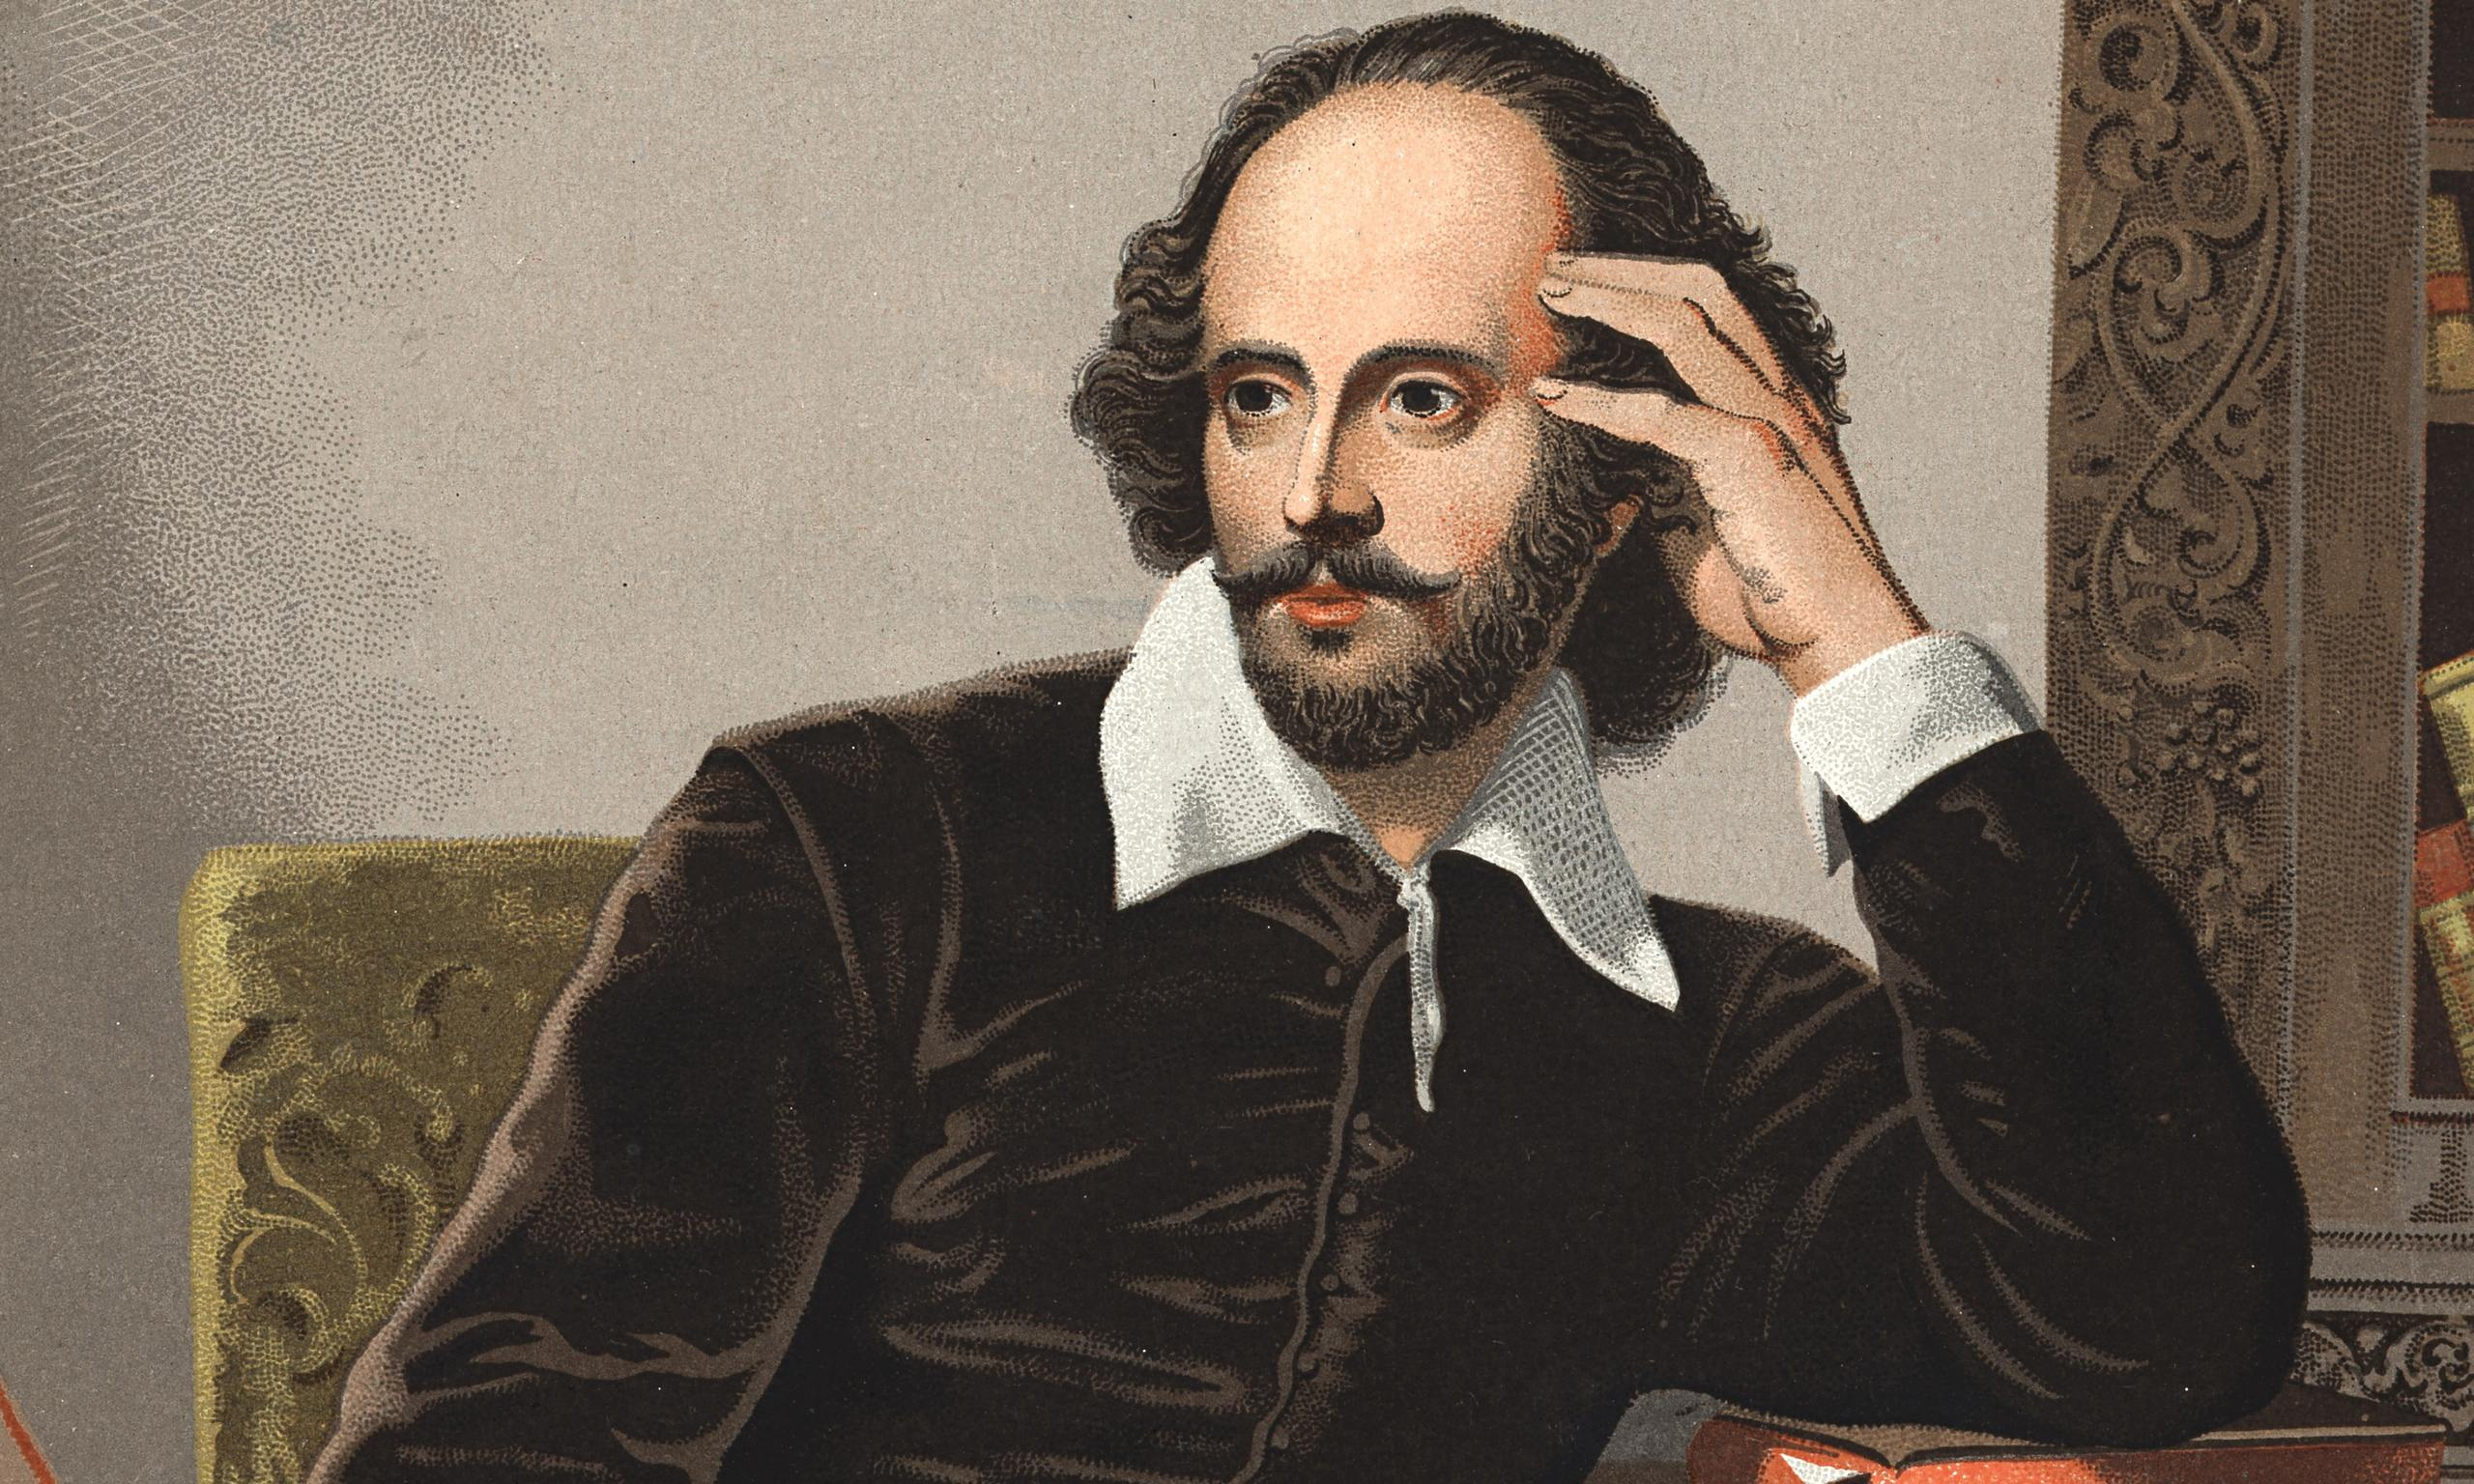 ¿Cómo ha influído William Shakespeare en la cultura popular?